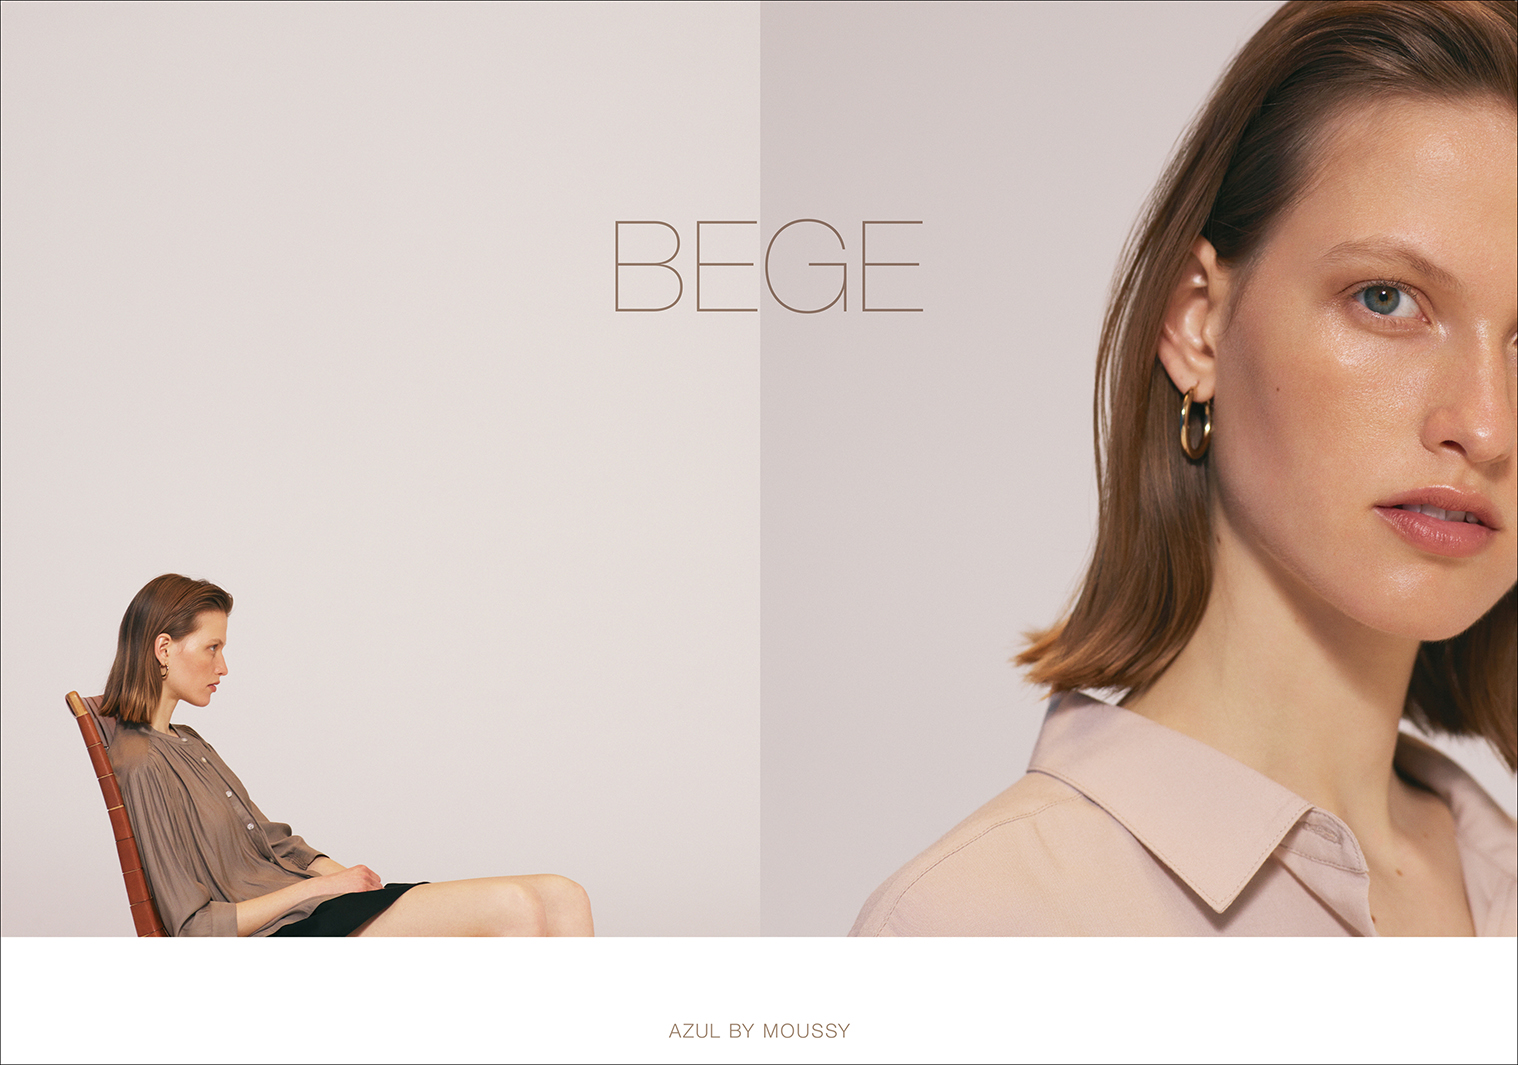 「AZUL by moussy」、新カジュアルライン「BEGE COLLECTION」ローンチ(提供写真)